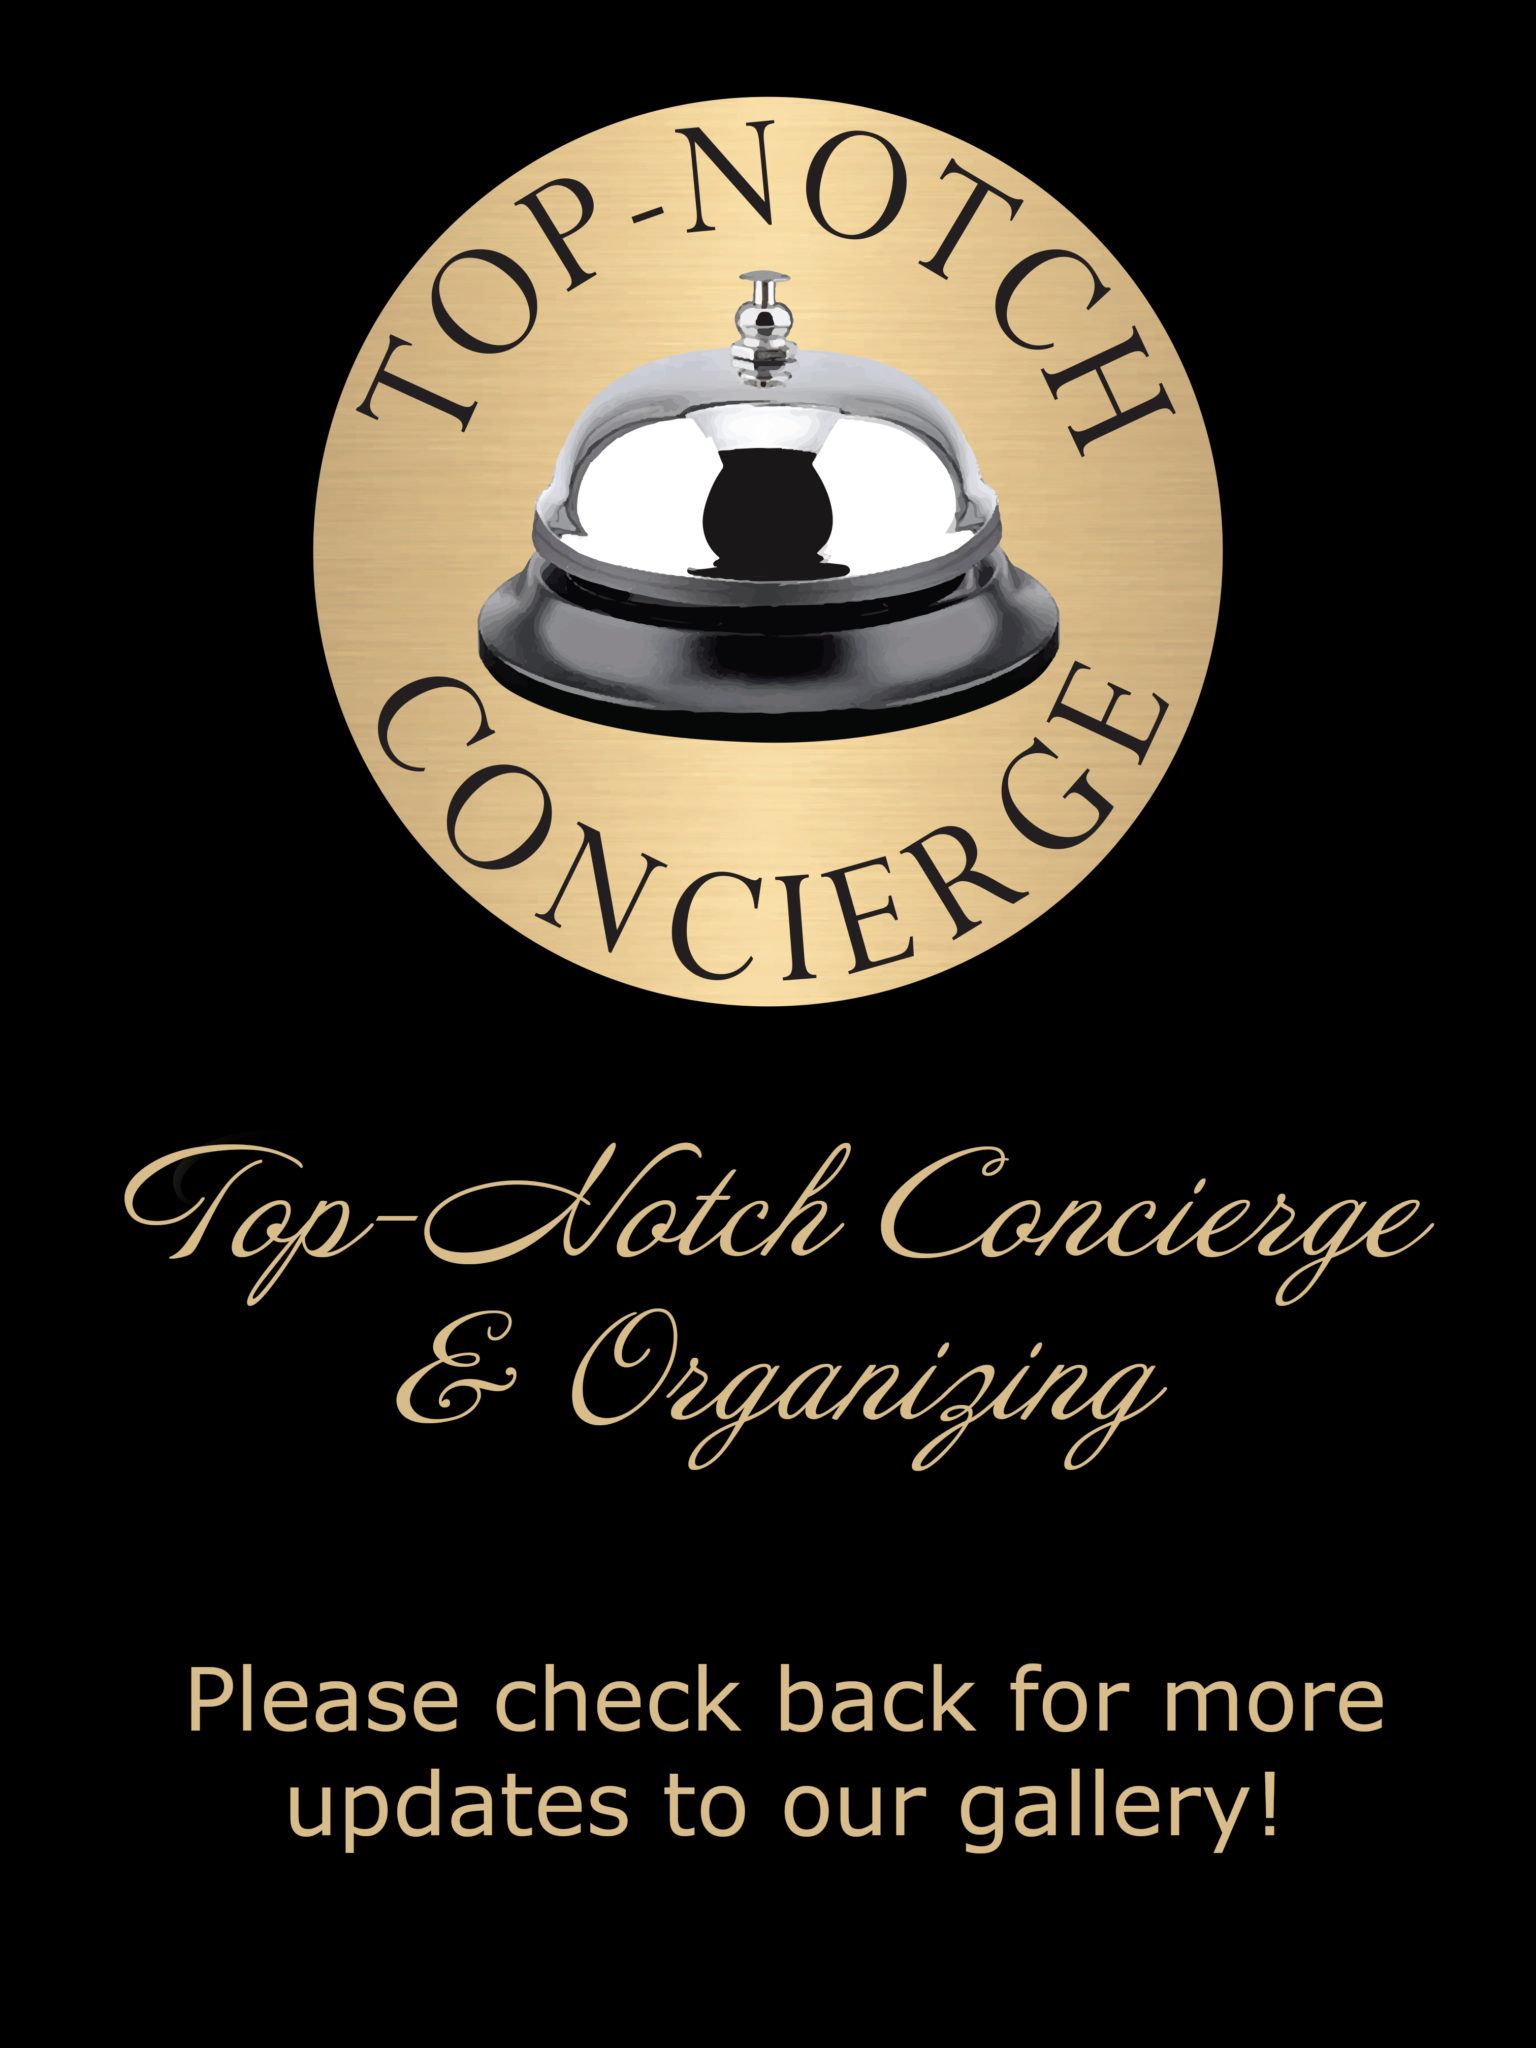 Top-Notch Concierge & Organizing